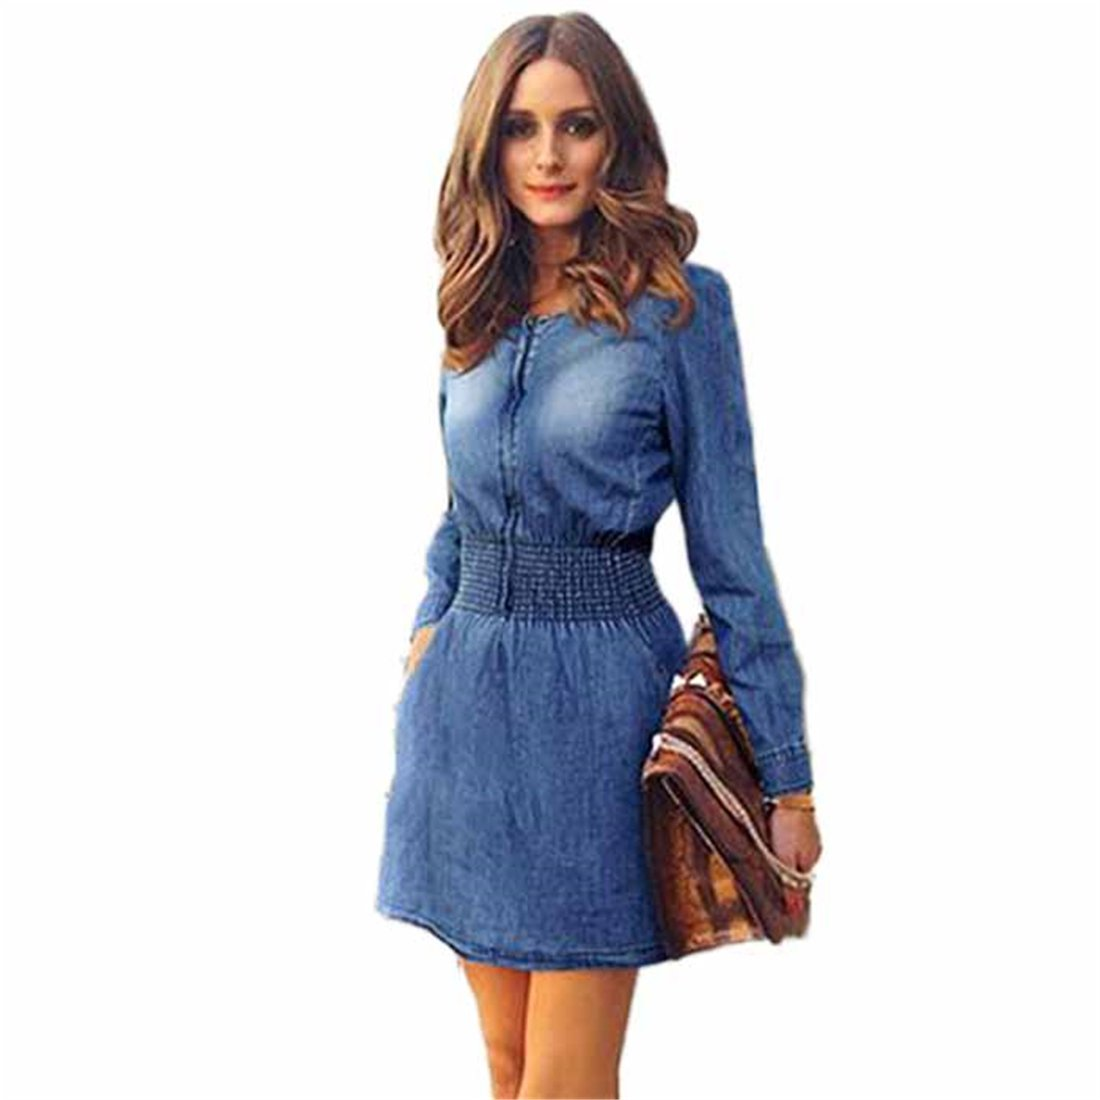 82659fddb0 Amazon.com: Hemlock Denim Jeans Dress, Women's Ladies Dress Shirt Party  Mini Dress (S, Blue): Kitchen & Dining